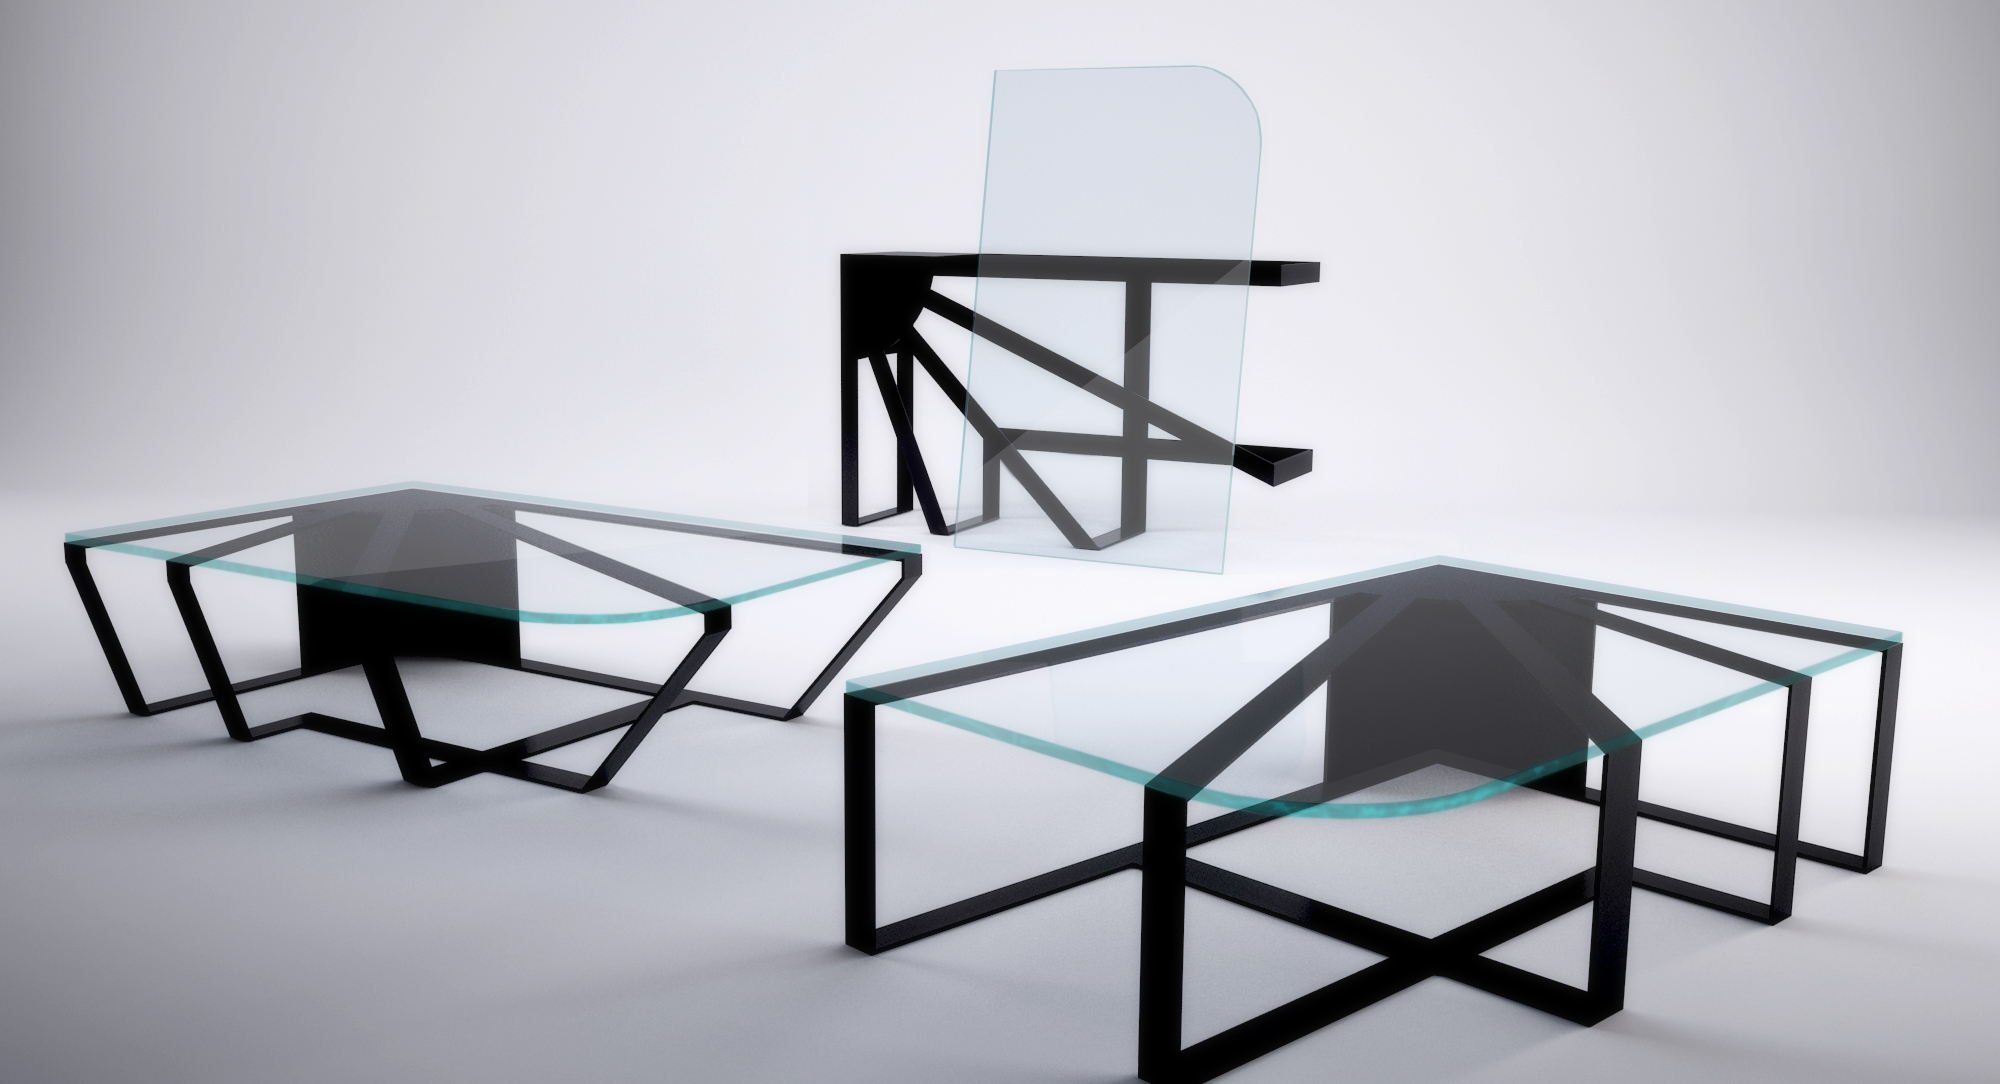 Solero coffee table by Cristian Arostegui from Arostegui Studio